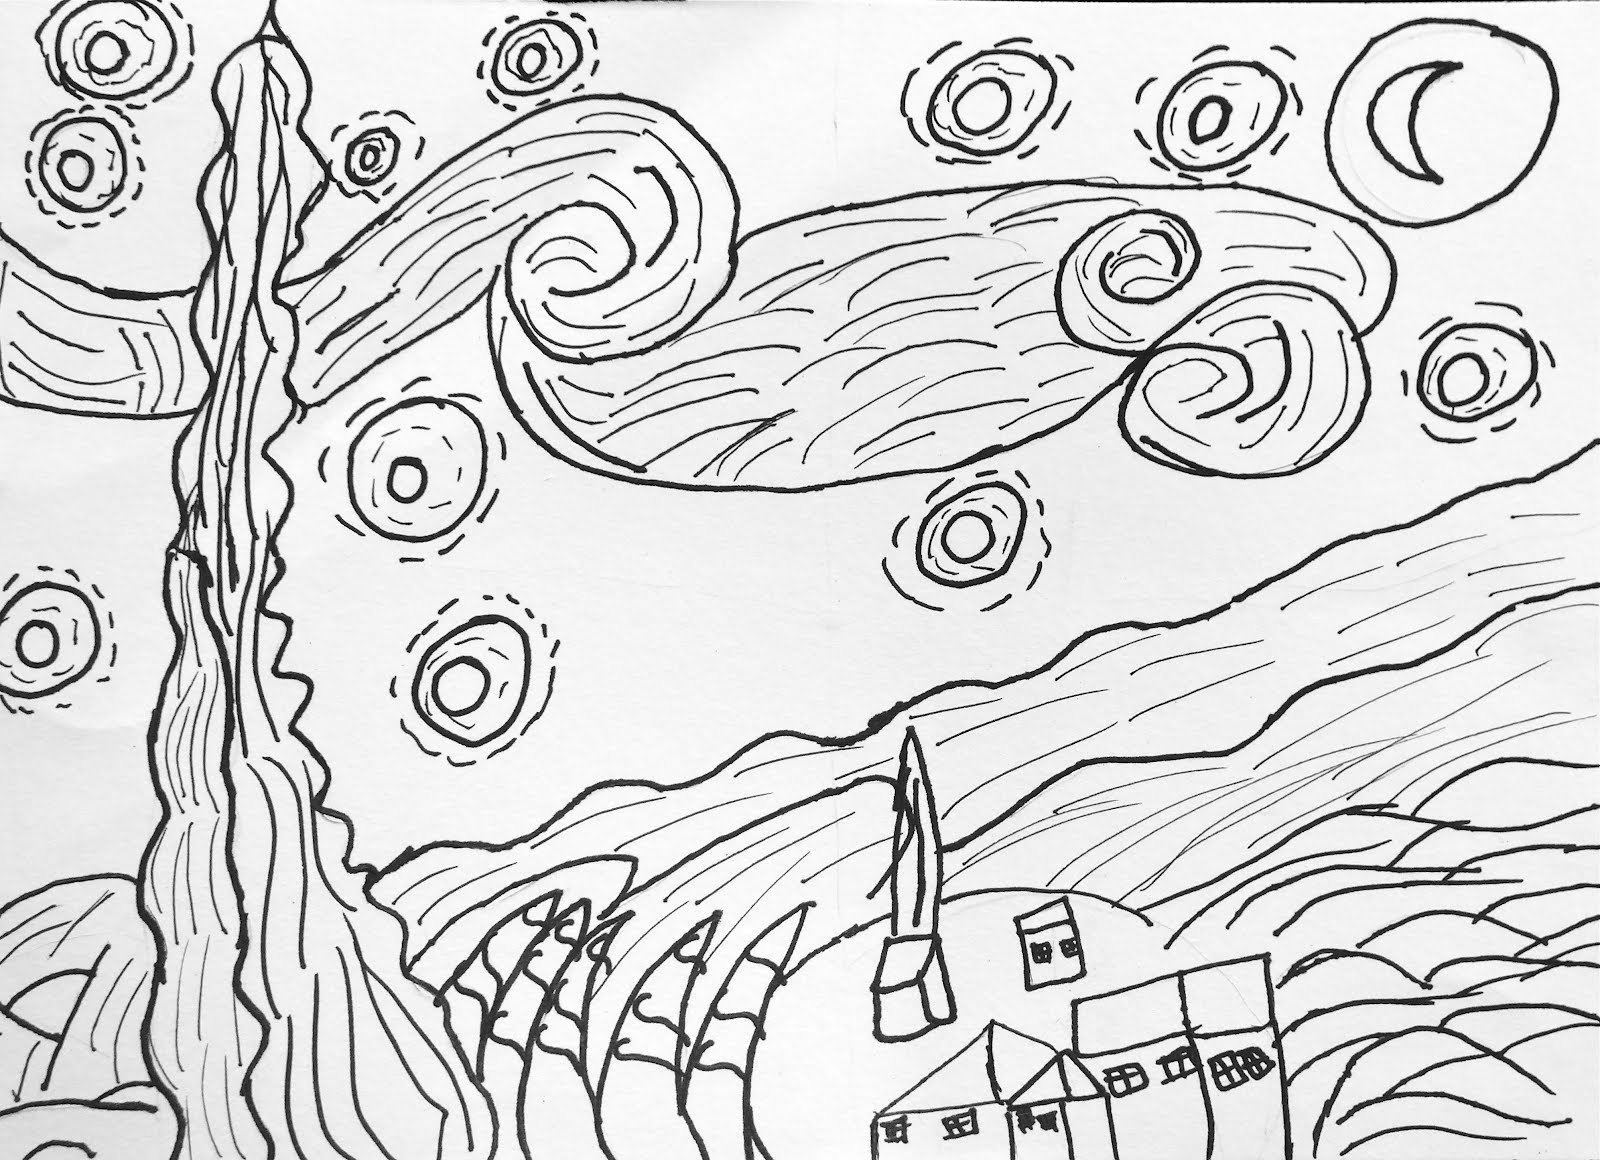 Starry Night Drawing at GetDrawings.com | Free for personal use ...